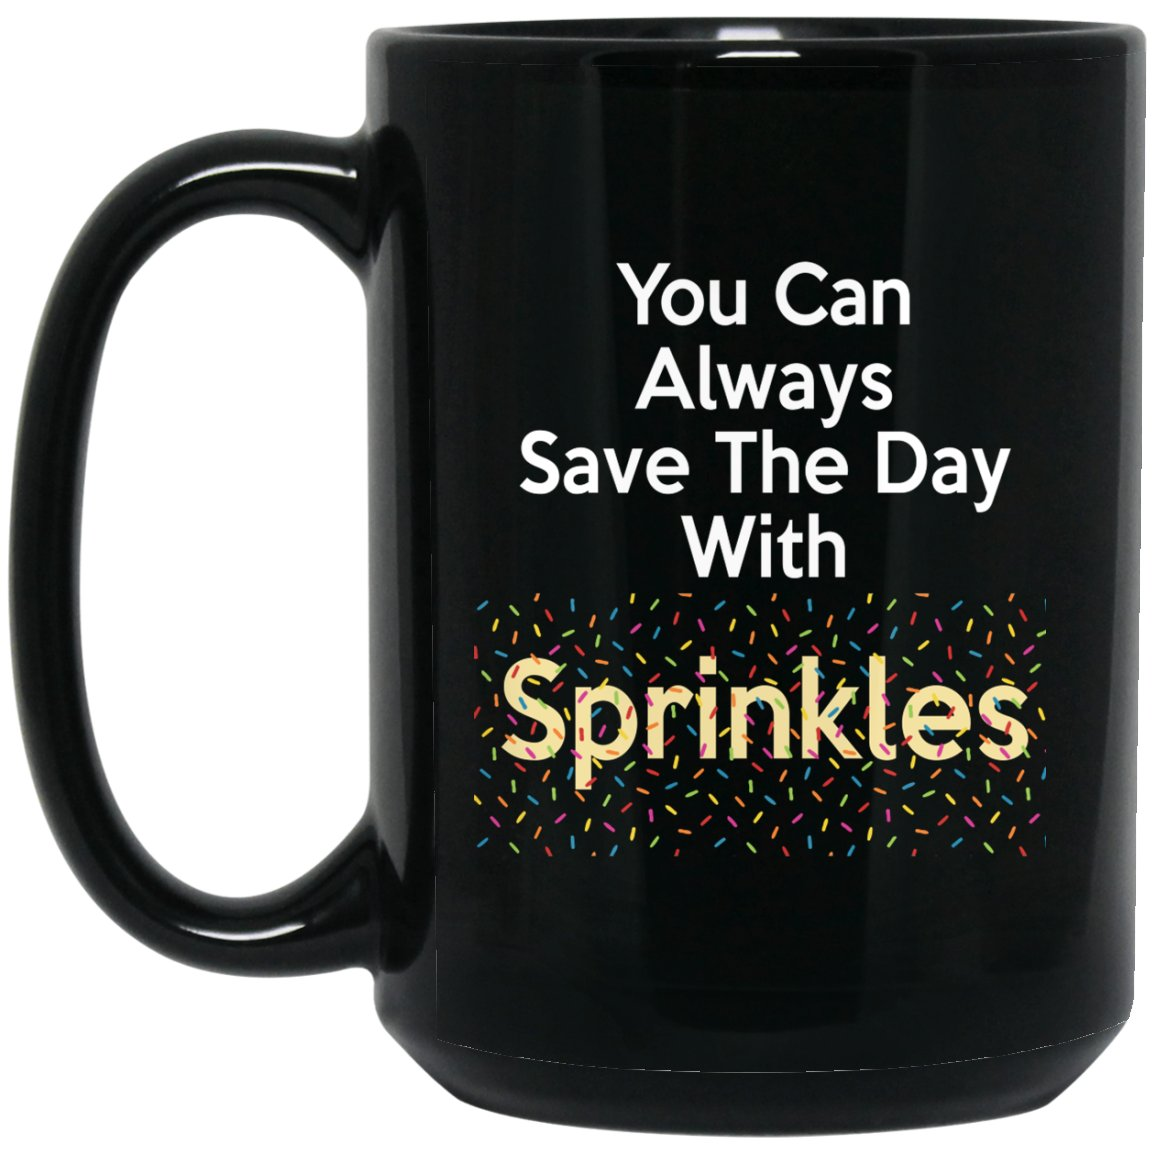 Funny Baking Gift - You Can Always Save The Day With Sprinkles Large Black Mug